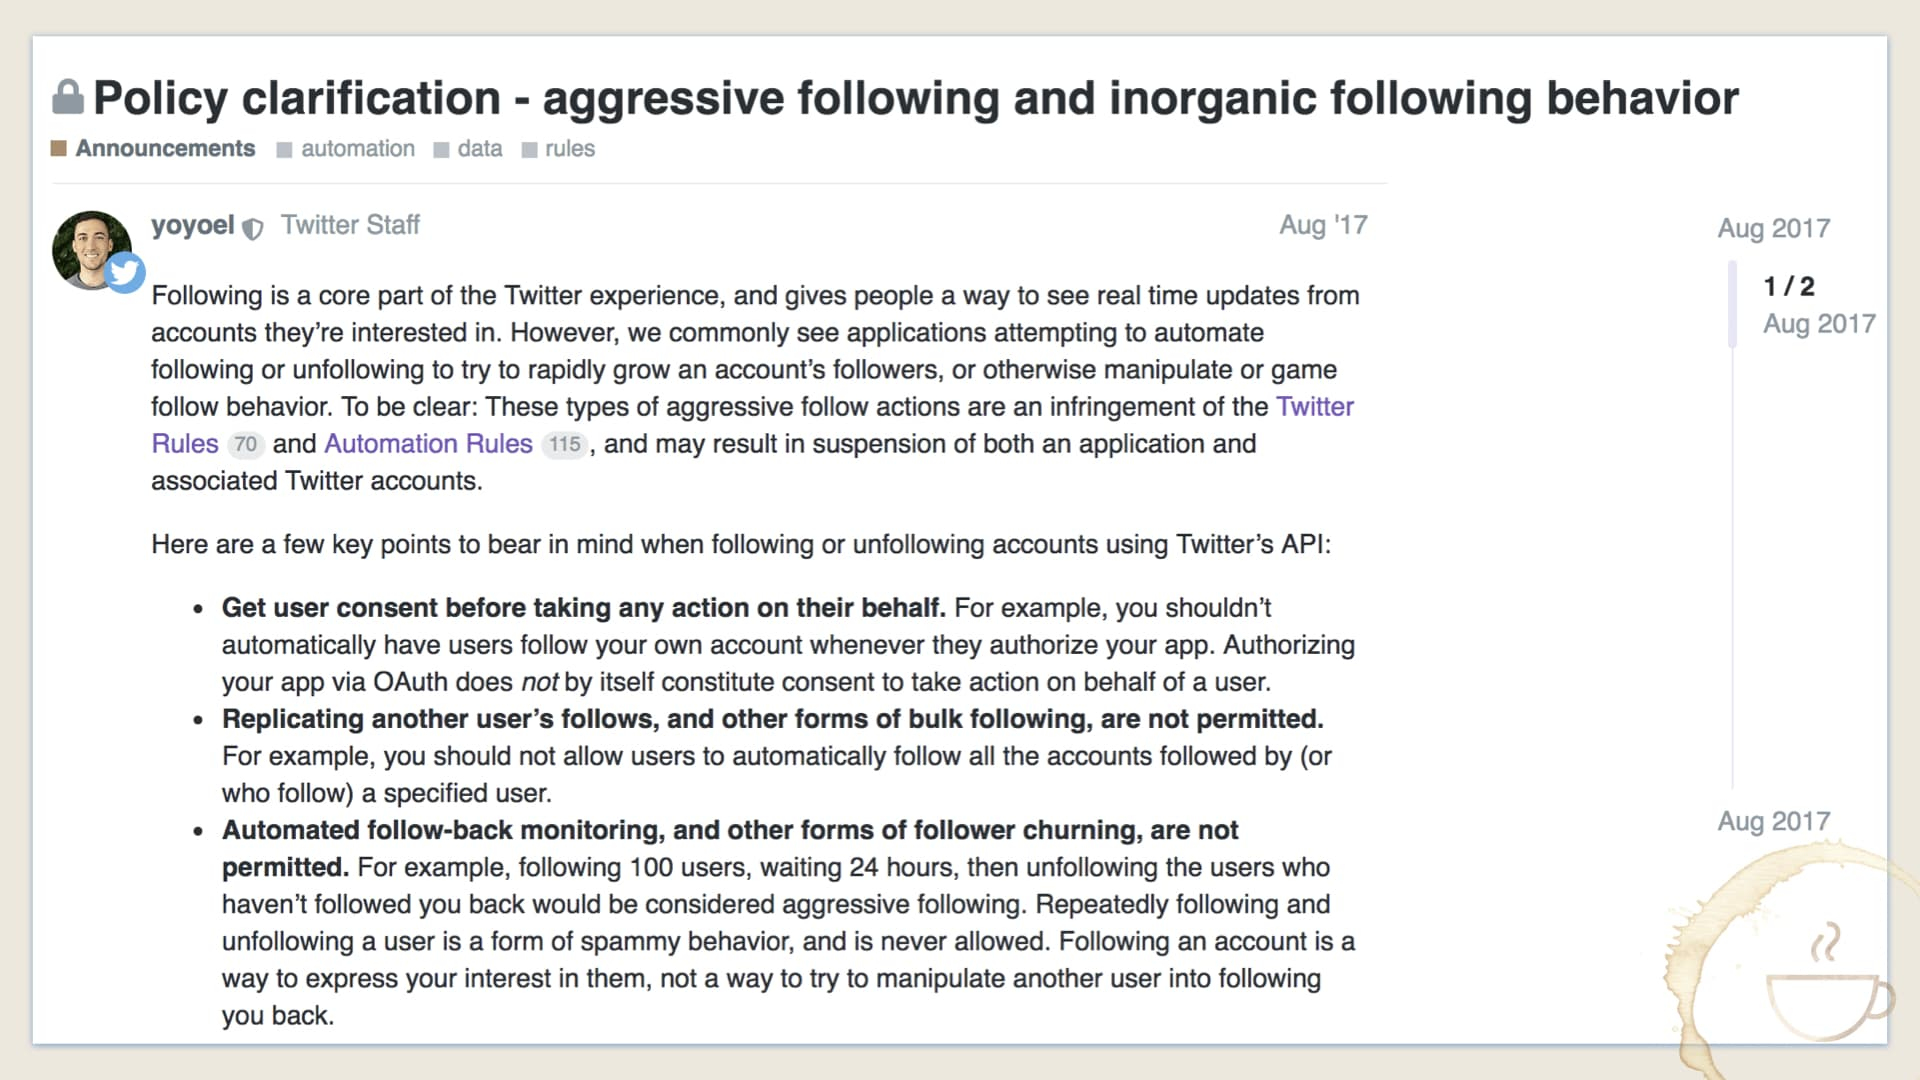 Twitter clarifies policy on aggressive behavior and inorganic behavior